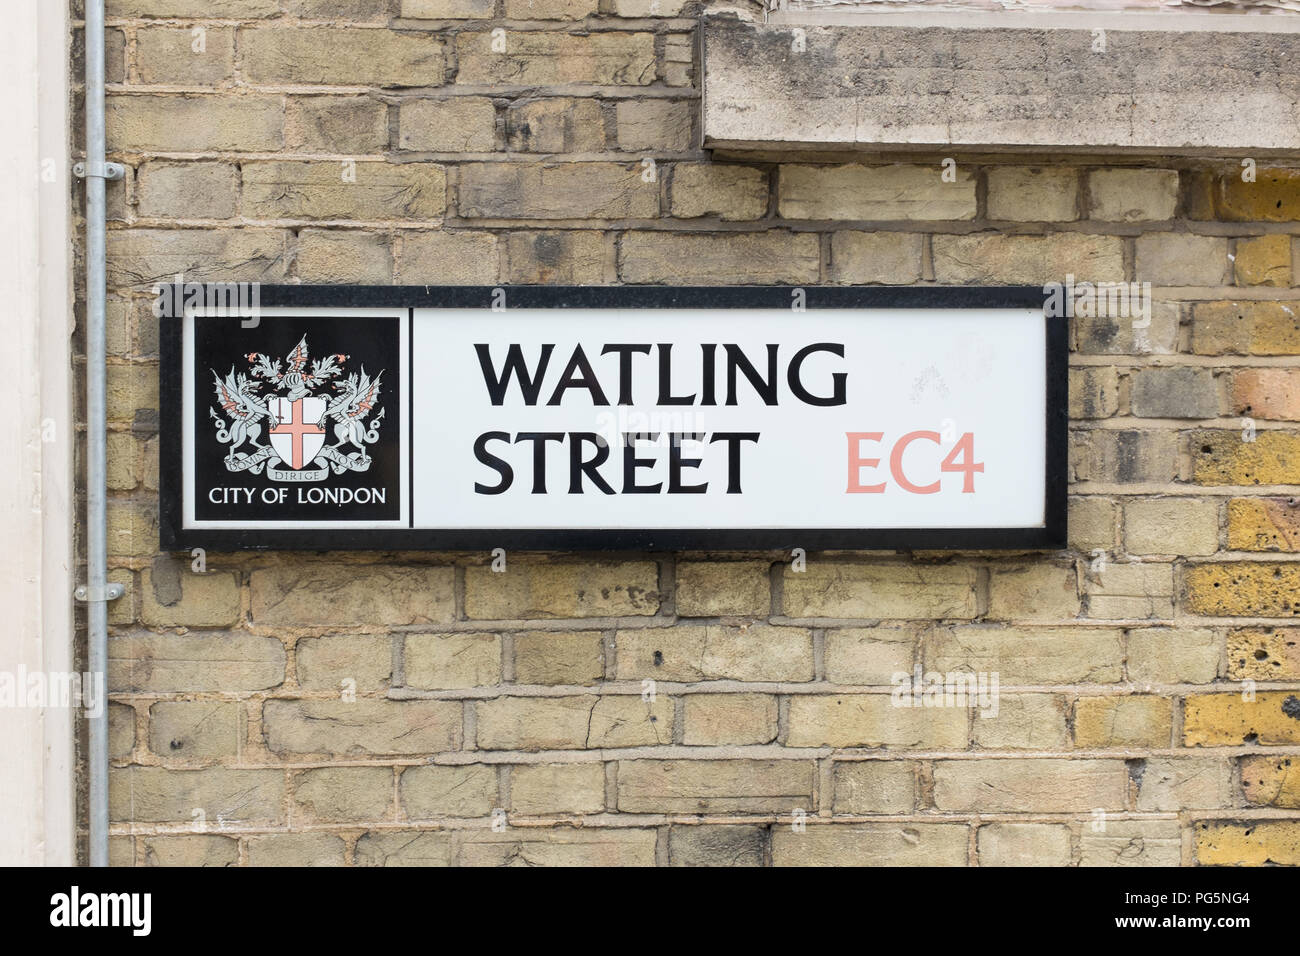 Traditional street sign for Watling Street in the City of London mounted on a wall made of London bricks - Stock Image